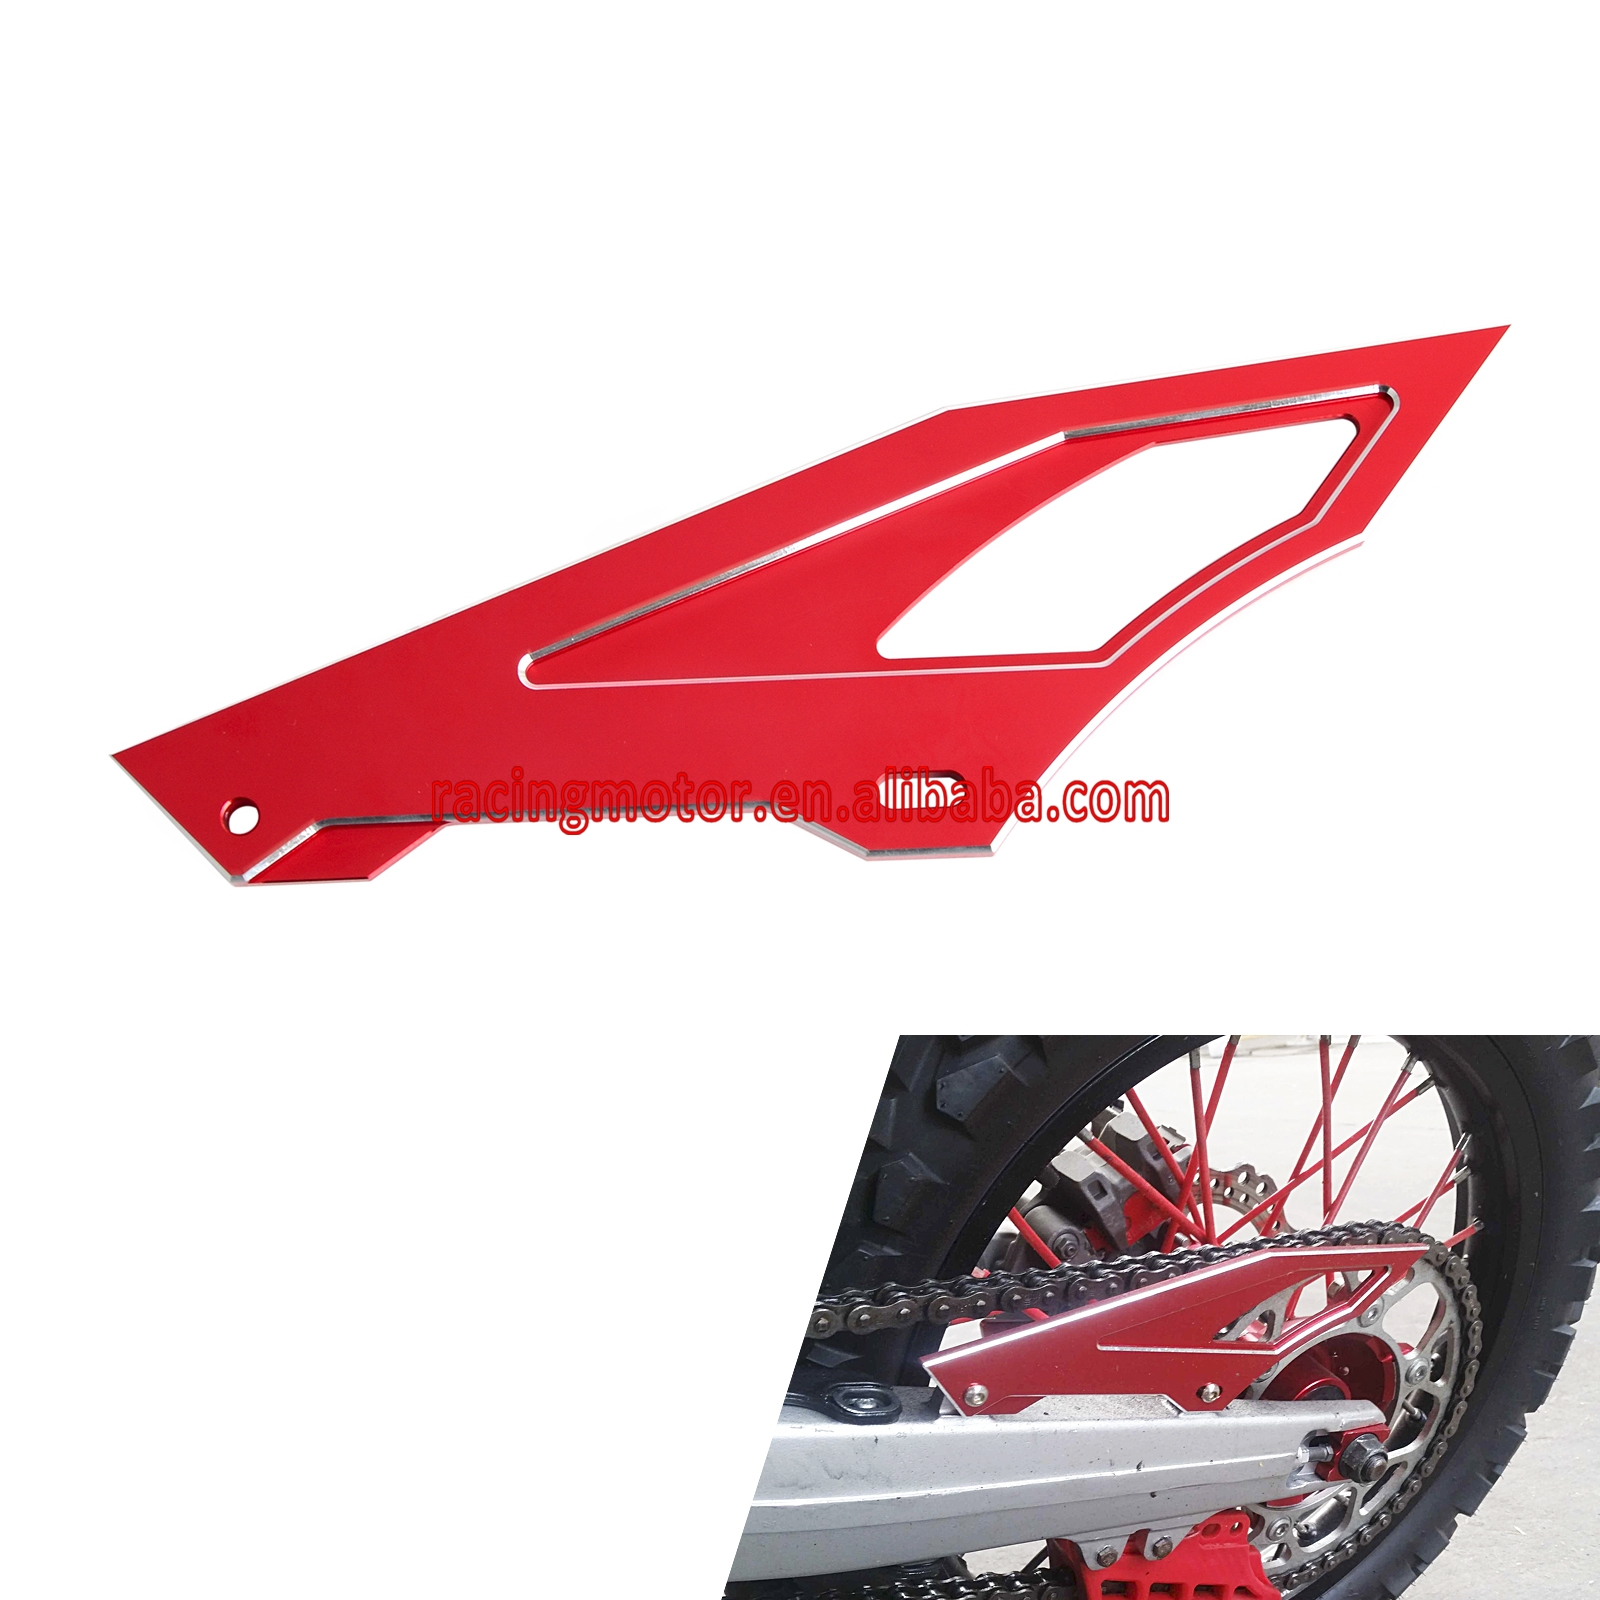 Aluminum Chain Cover Guard For Honda CRF 250L CRF250M 2012-2015 XR250 Baja 1995-Up Yamaha Serow225 TW200 TW225<br>